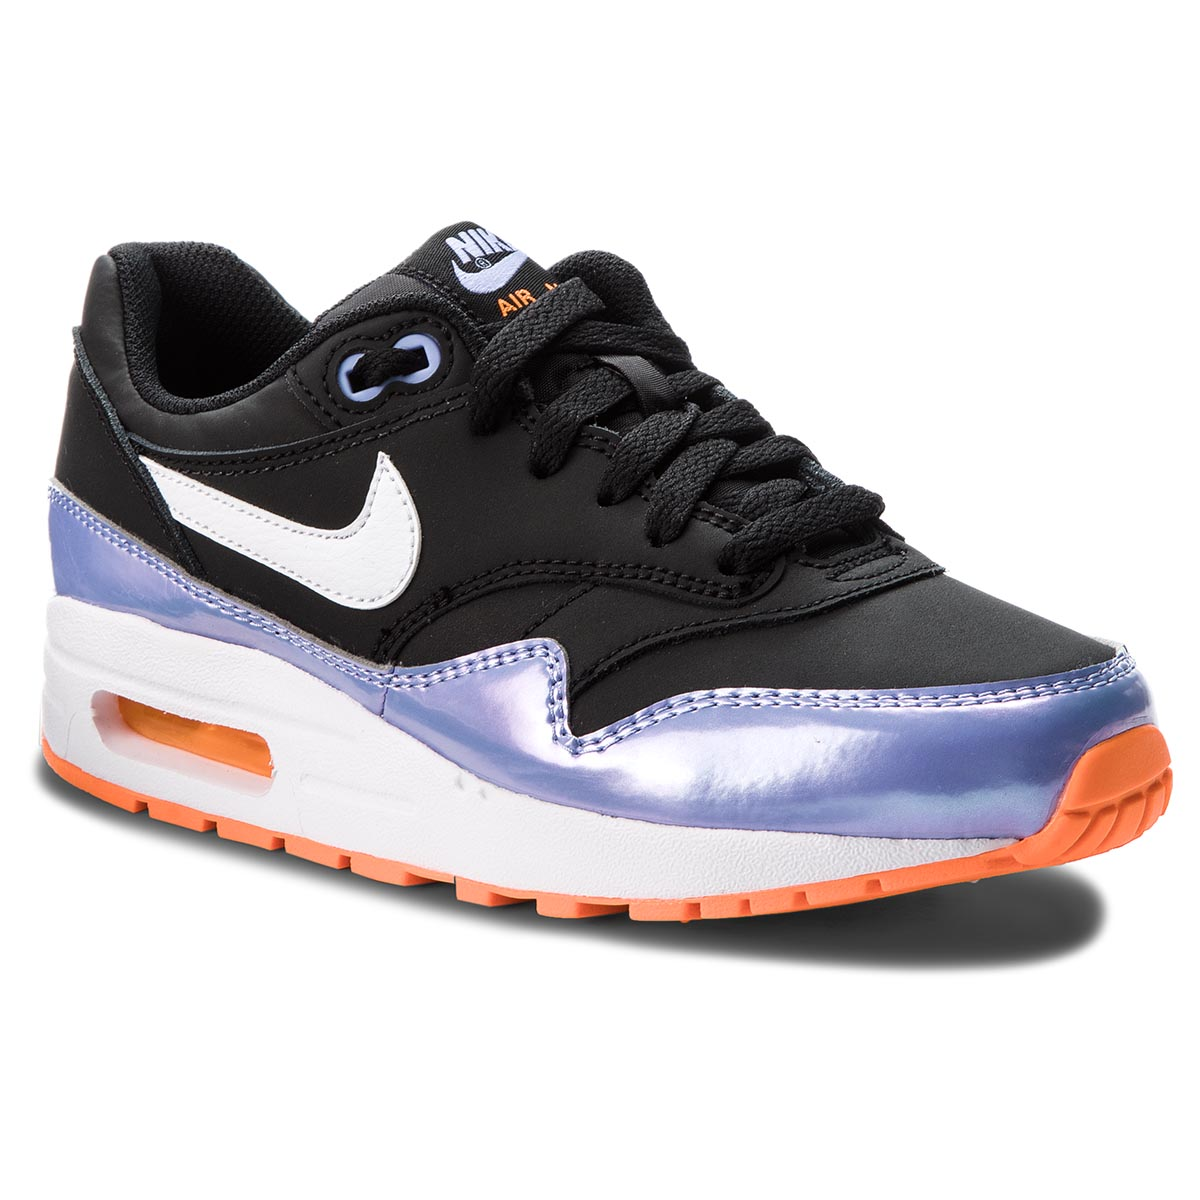 ... NIKE - Air Max 1 (GS) 807605 003 Black White Twilight. -14%. Cipő ... d81a31cc43